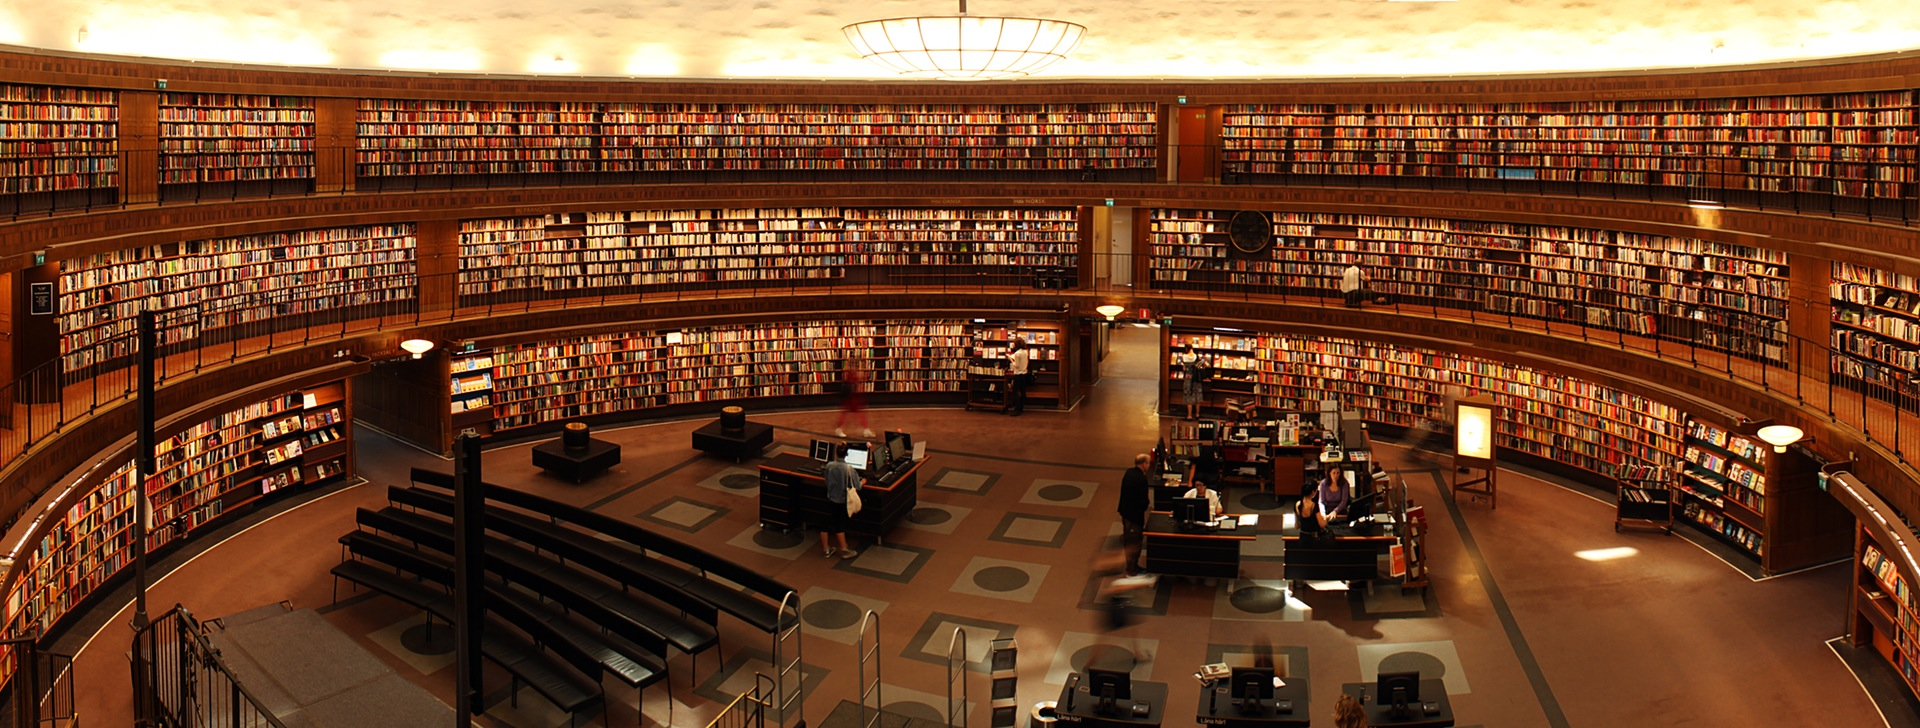 ono's mighty library